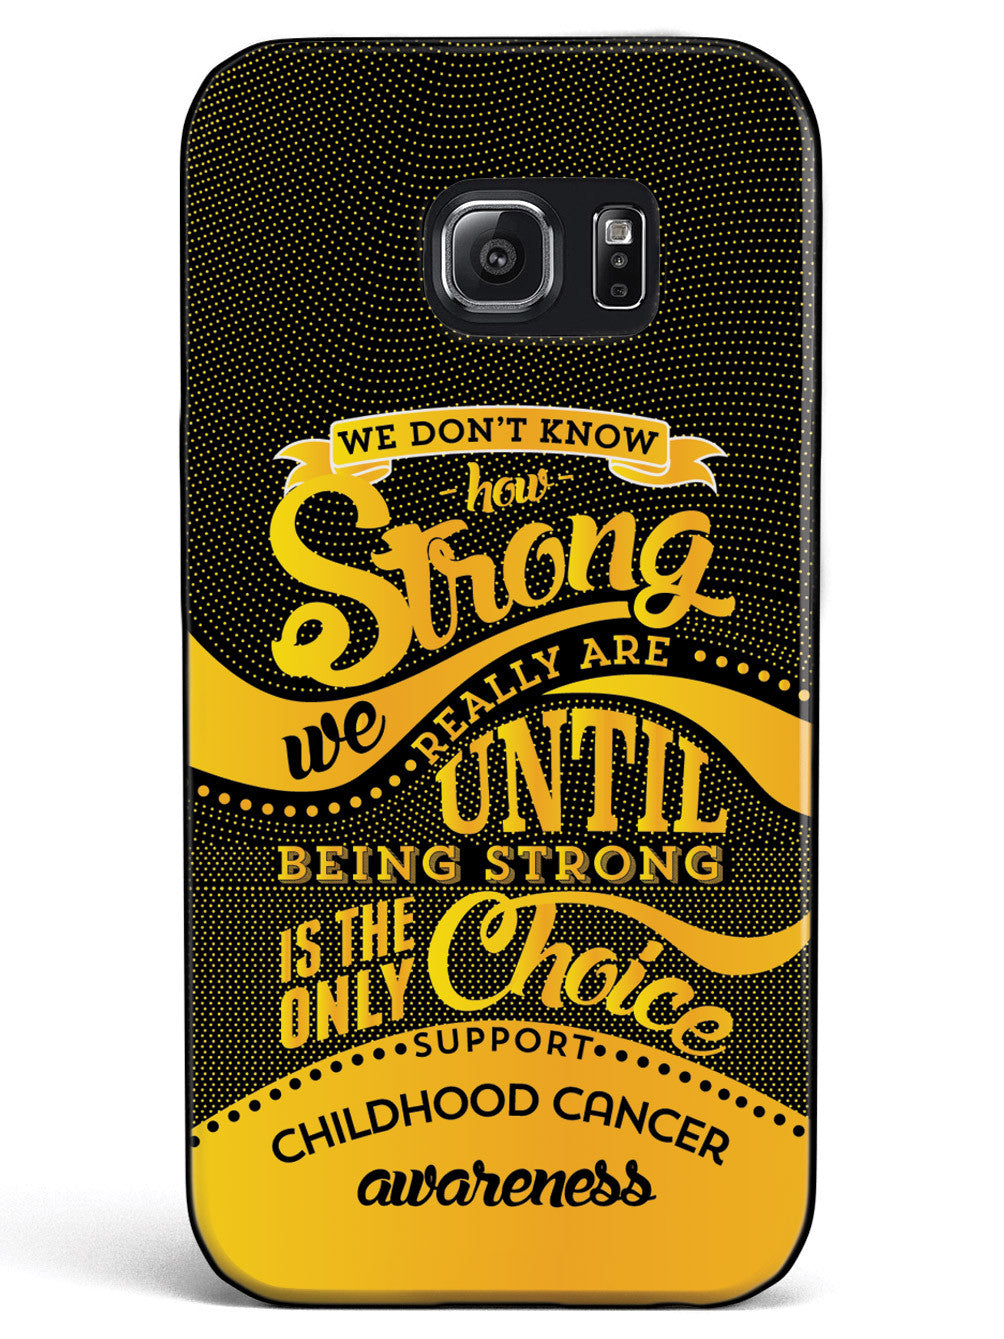 How Strong - Childhood Cancer Awareness Case